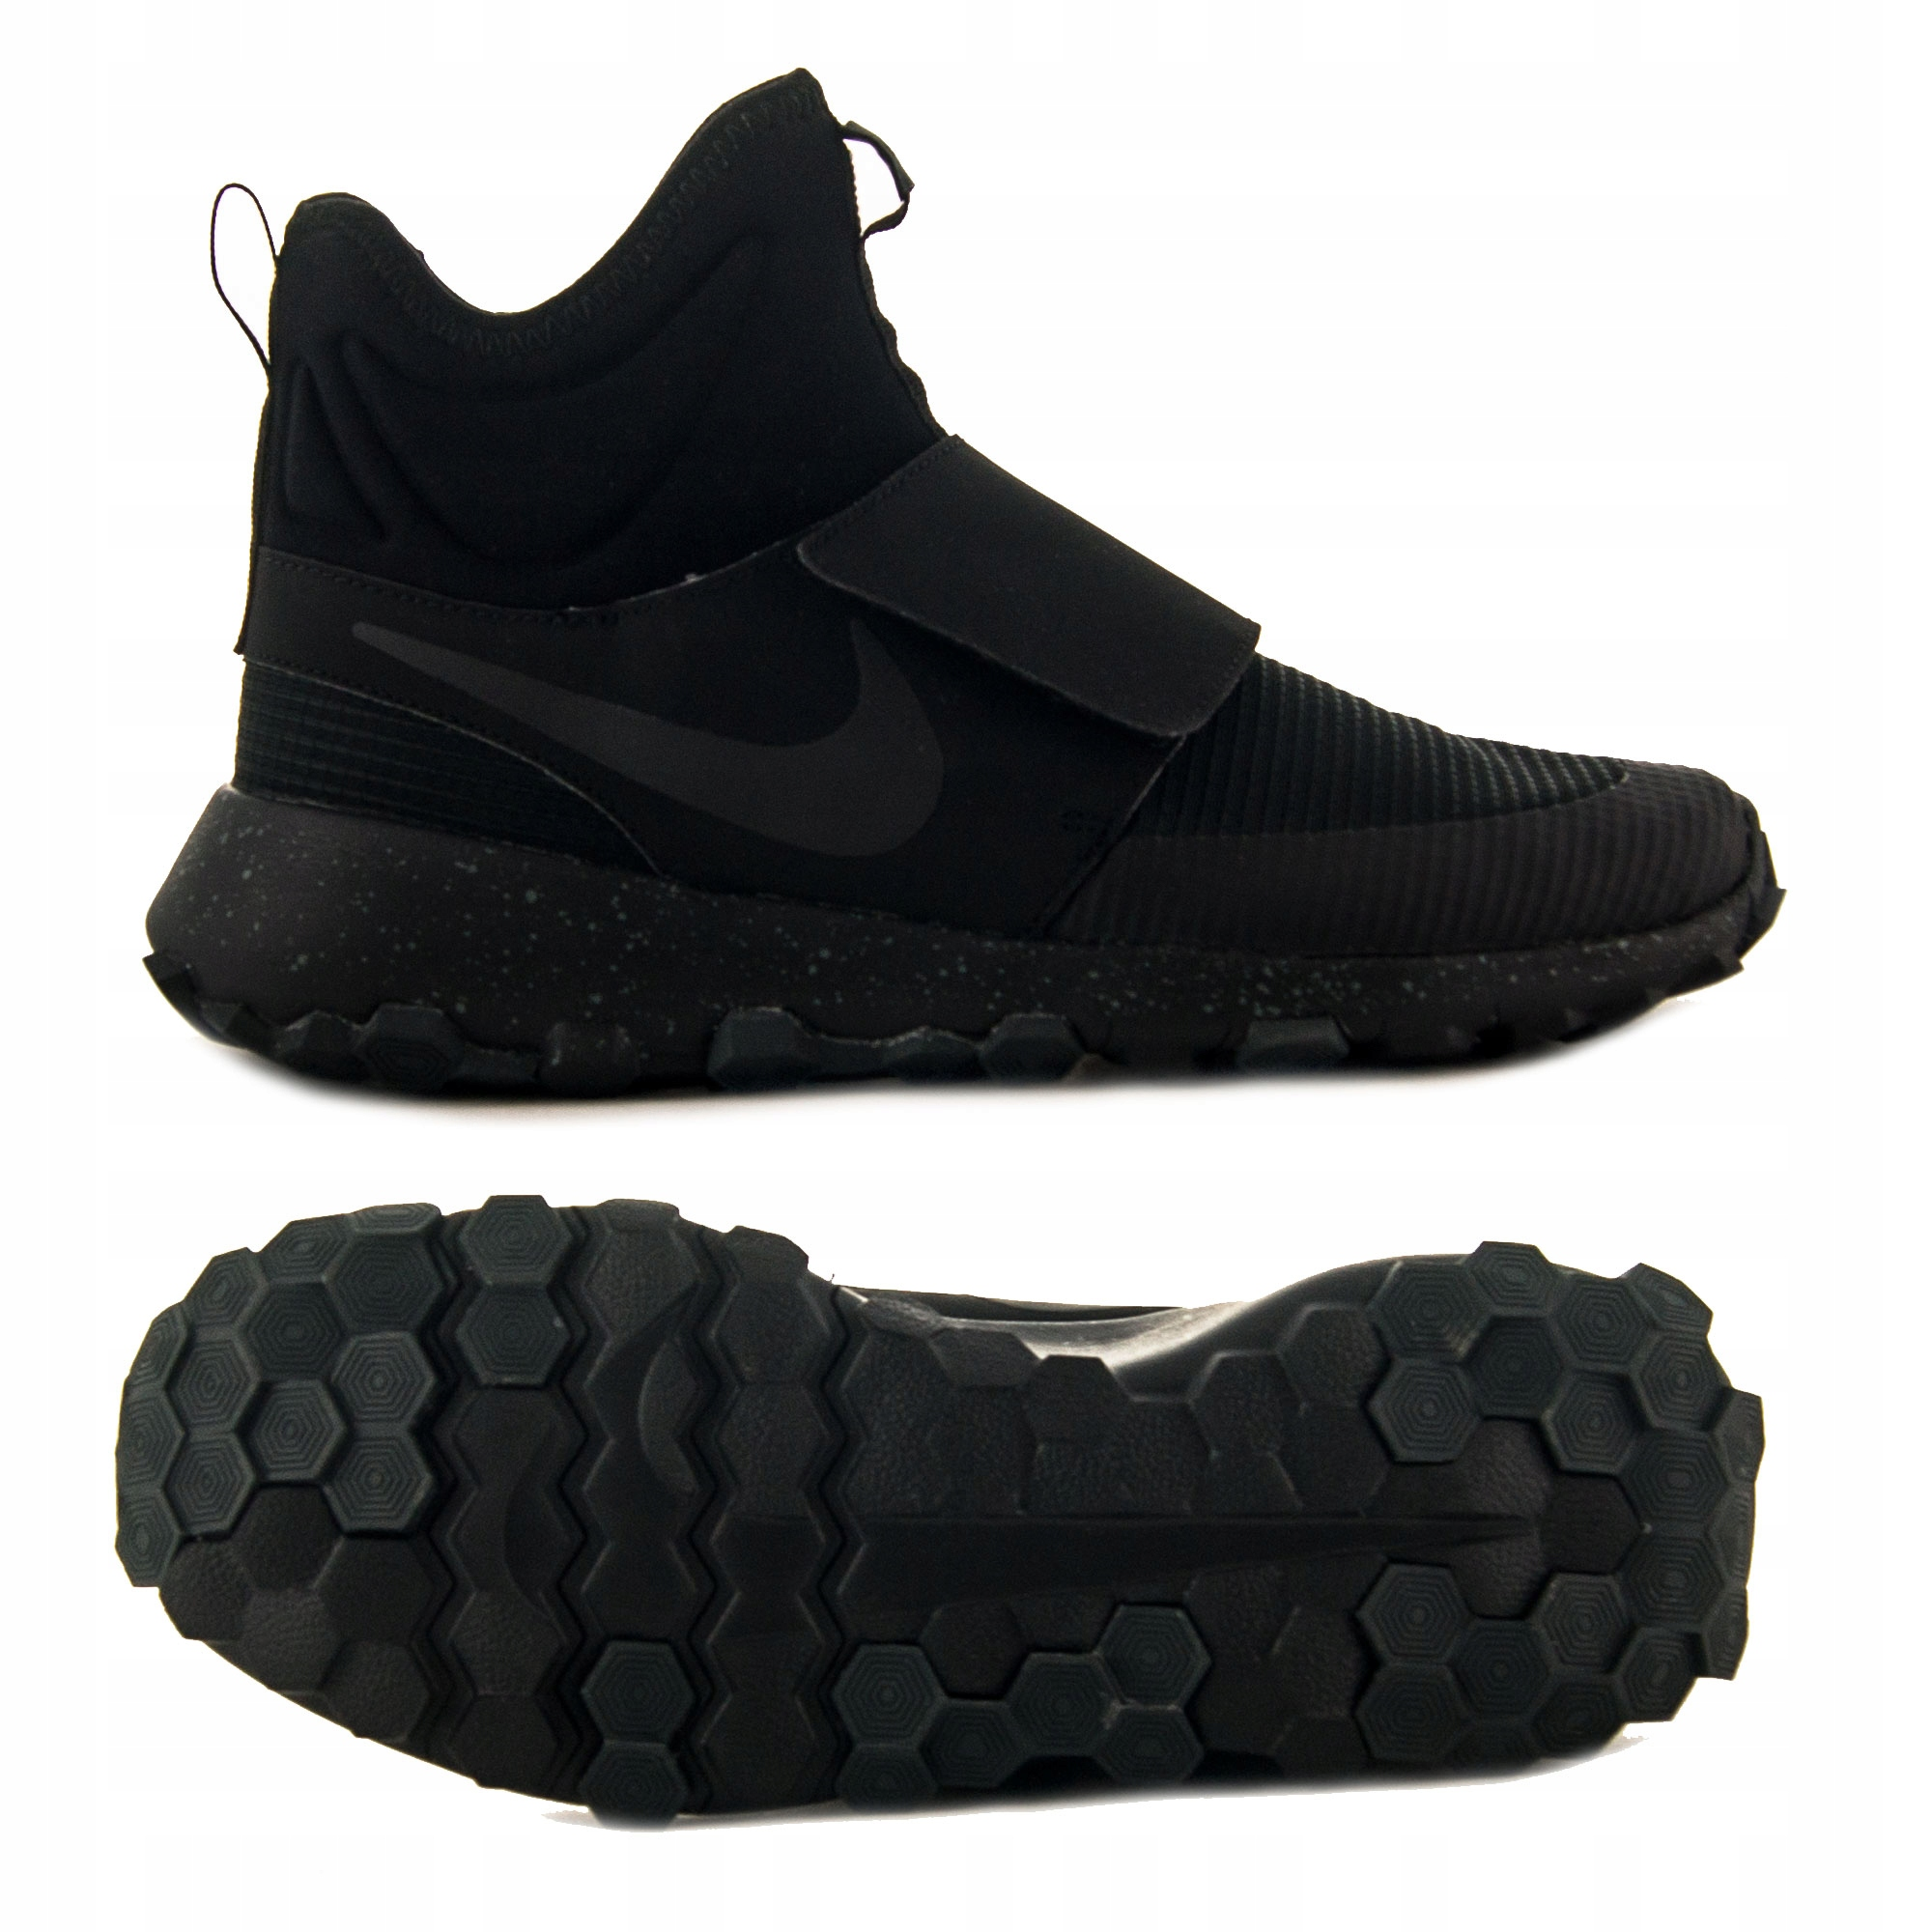 huge discount 86777 68c9d BUTY DAMSKIE NIKE ROSHE MID WINTER STAMINA 37,5